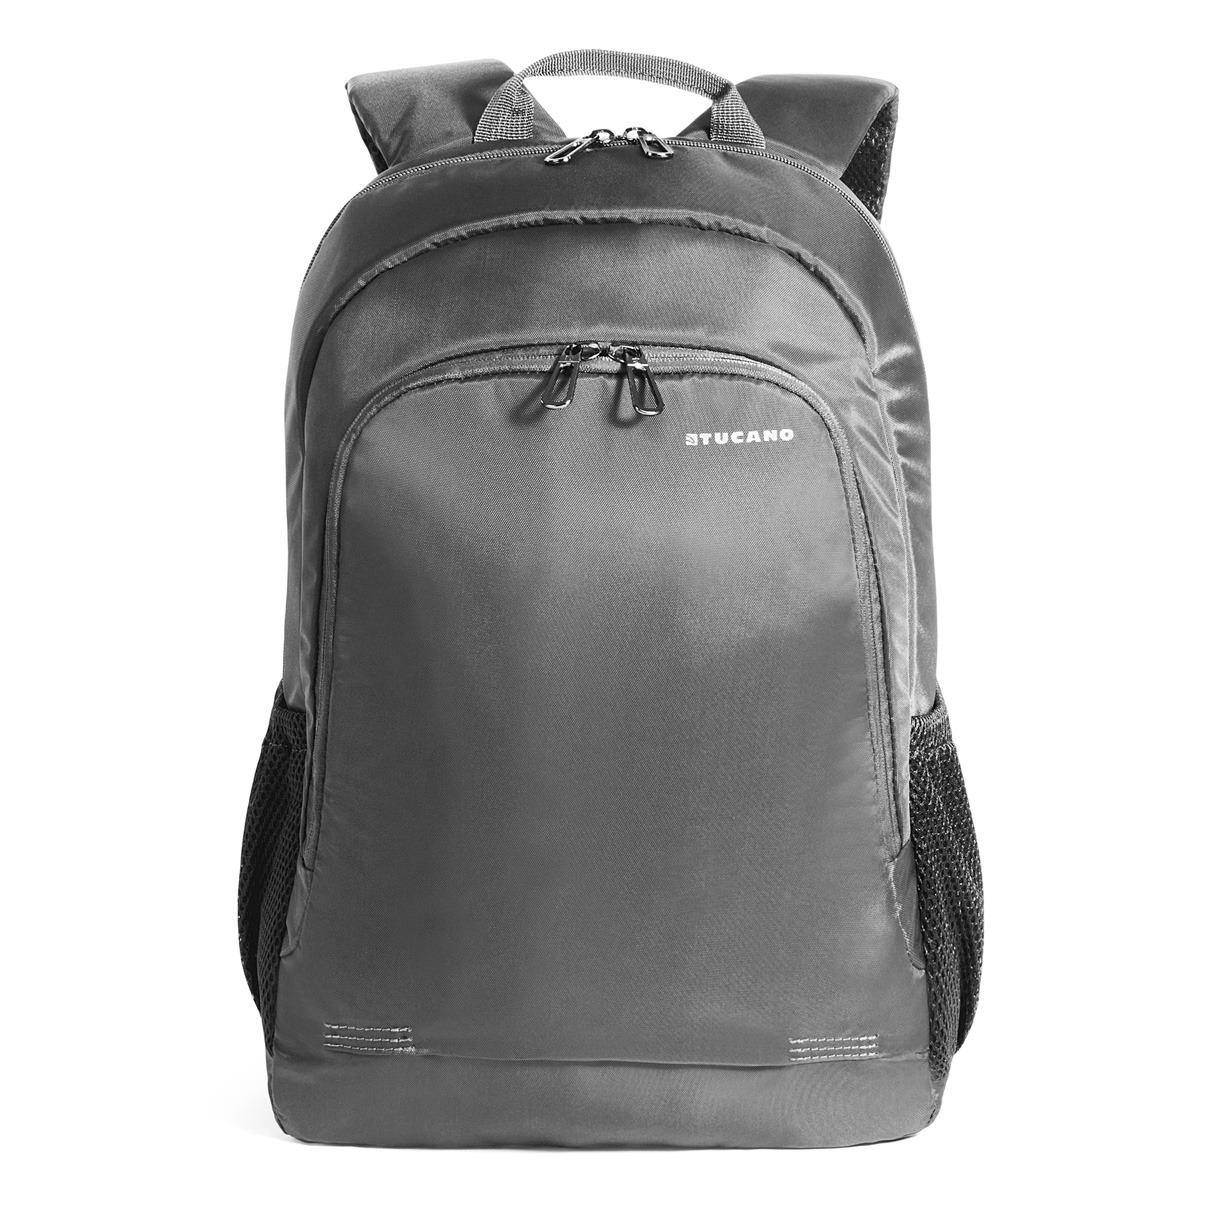 Tucano Forte Backpack For Notebook 15 6In And Macbook Pro 15In Retina On Line